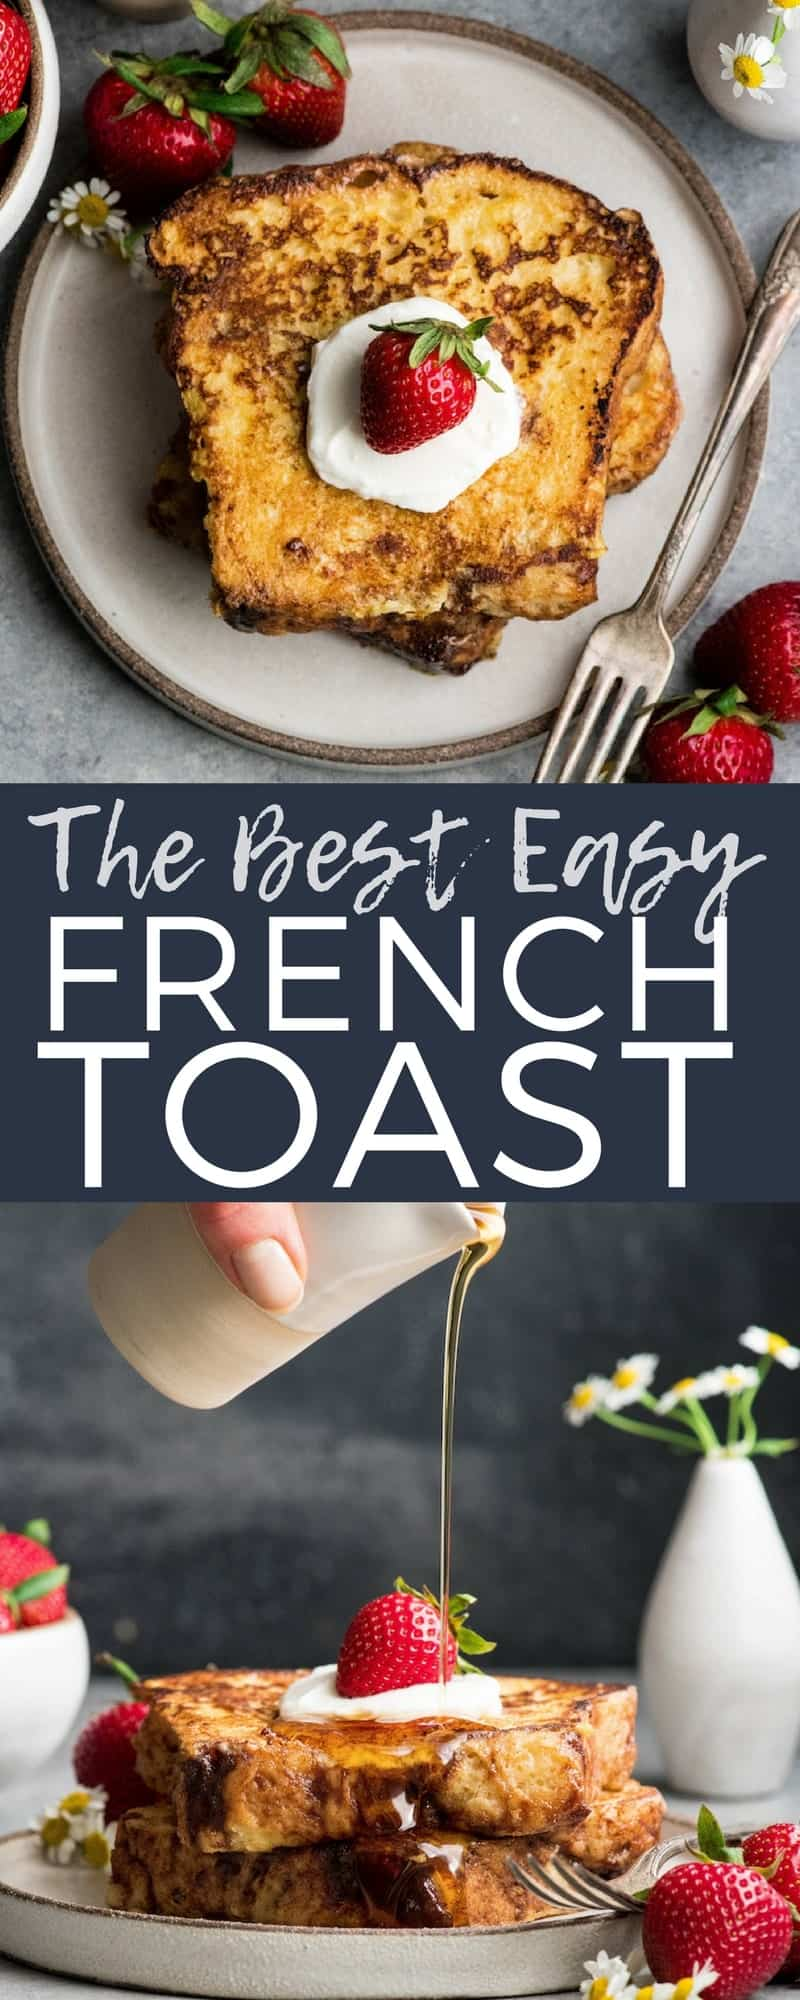 This is the best Easy French Toast Recipe ever! It's ready in 20 minutes and is one of our family's favorite breakfasts! #frenchtoast #classic #easy #kneaders #breakfast #recipe